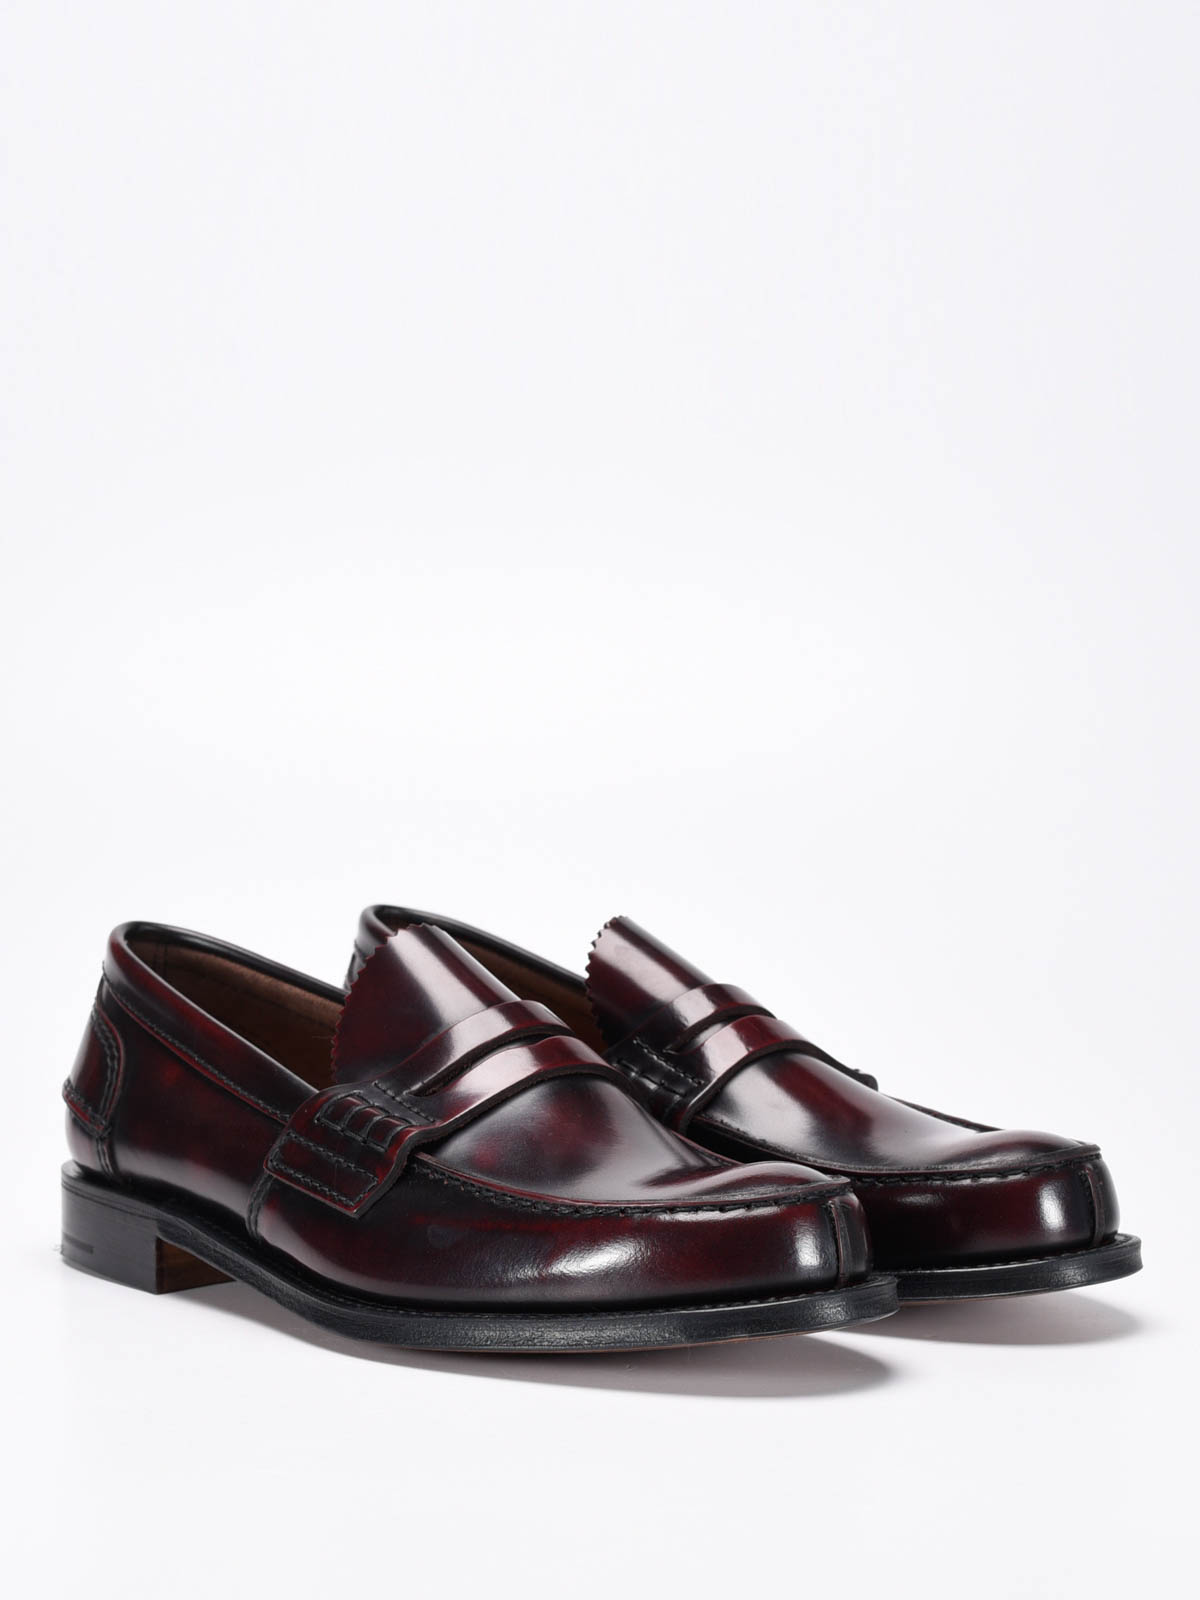 online store 15933 2b538 churchs-online-loafers--slippers-tunbridge-leather-loafers-00000100251f00s072.jpg